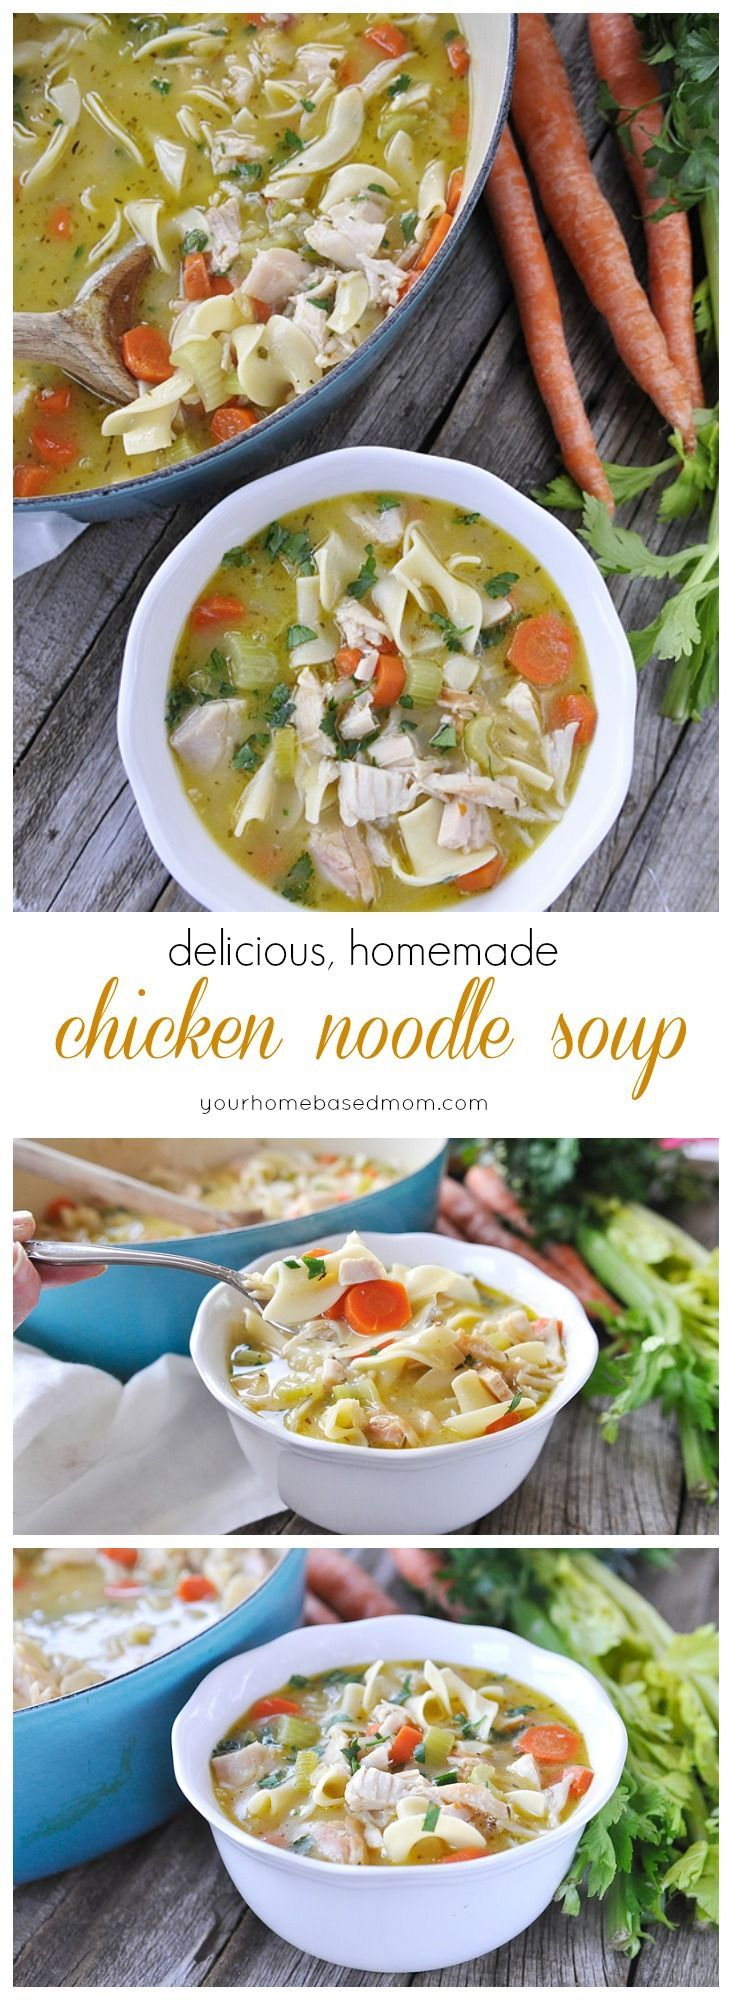 Chicken Noodle Soup is the best cure for a winter cold or dinner solution to a cold winter's night! Has the winter cold and flu season hit…